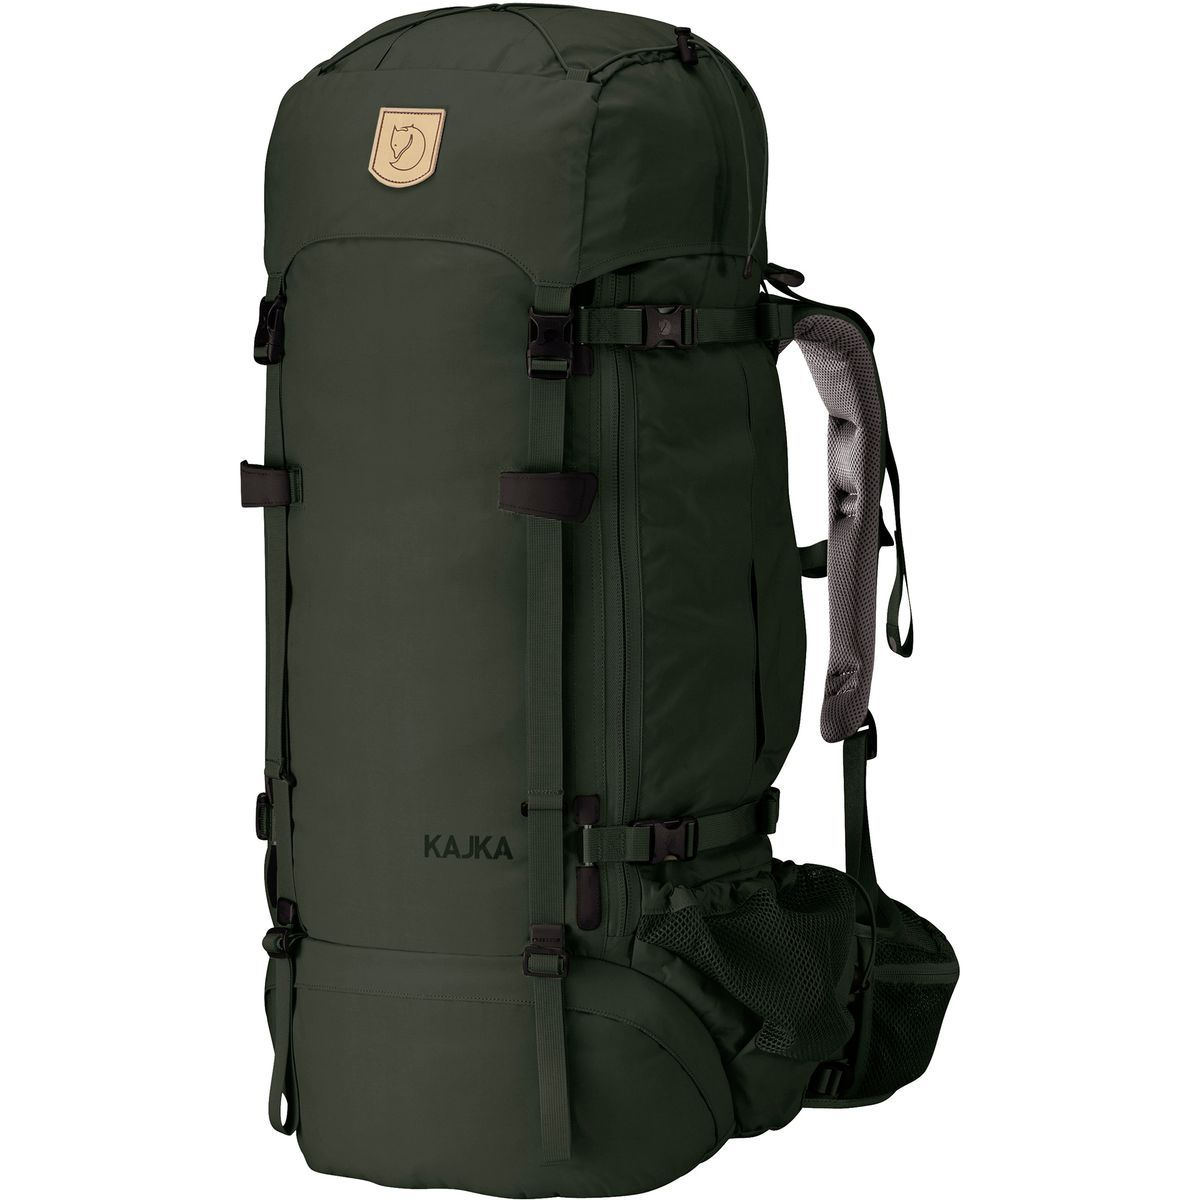 Photo of Fjallraven Kajka 75L Backpack